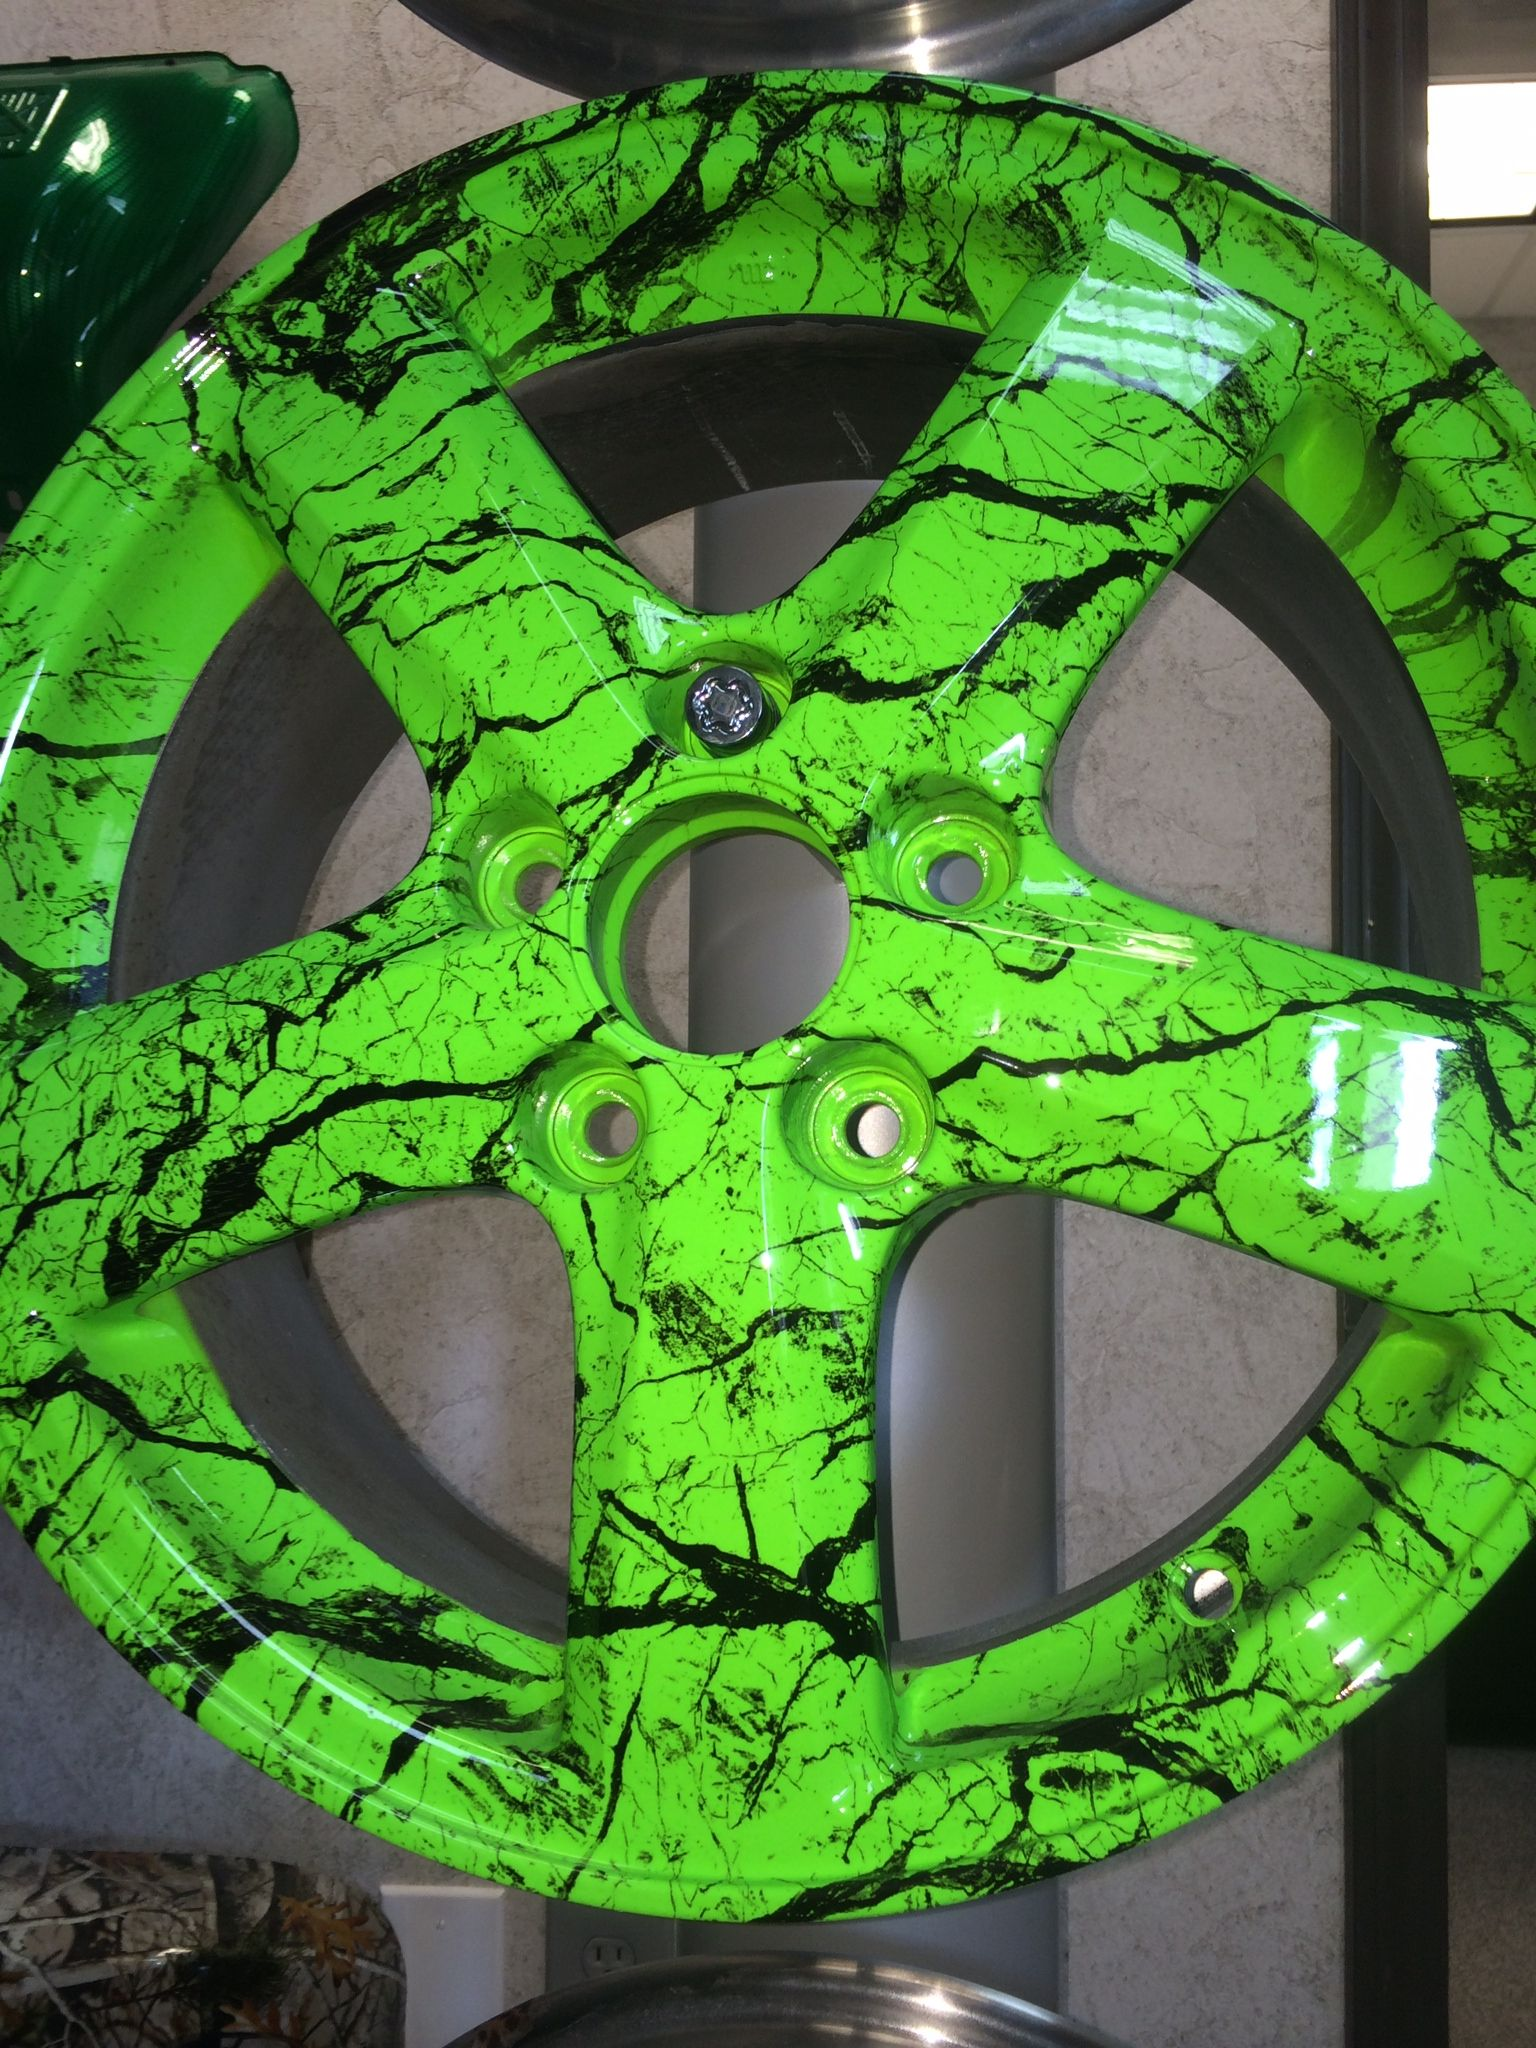 Hydrodipping Equipment For Sale